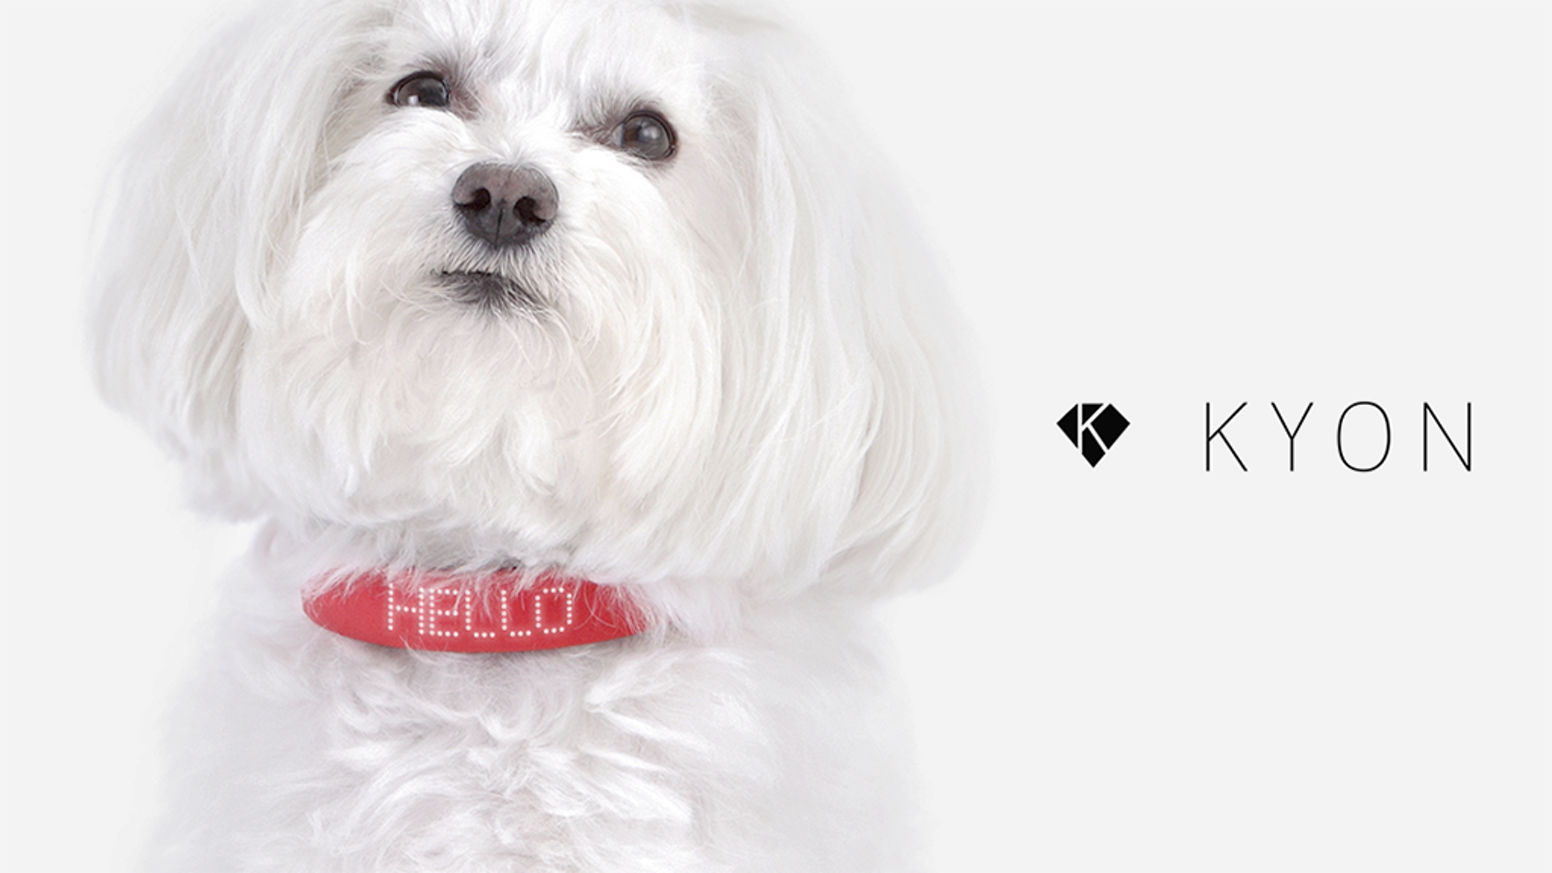 KYON is the first pet collar with embedded GPS technology and the  only one with LED display that makes communication with your pet even  easier.  You no longer have to guess what your pet is feeling.